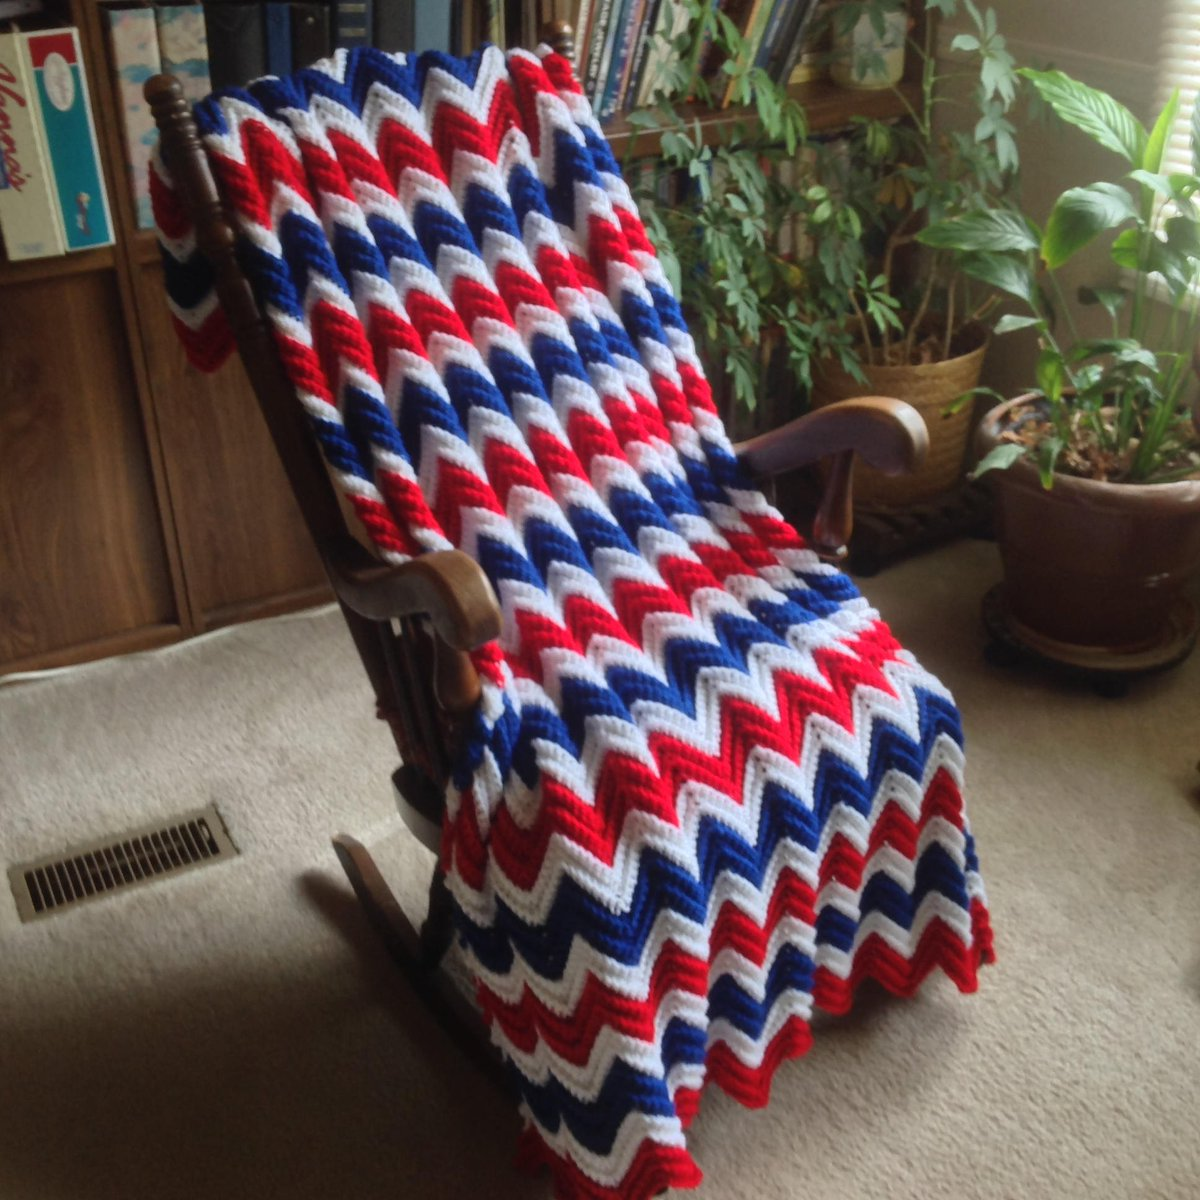 Red/White/Blue Chevron Afghan_Patriotic Hand Crocheted Throw_Mid Size Blanket_Free Shipping_Machine Wash/Dry_Ready to Ship_Made in USA  http:// tuppu.net/b03b595d  &nbsp;   #YarnQueens #Etsy #MilitaryGift <br>http://pic.twitter.com/Paf4OgtlK8